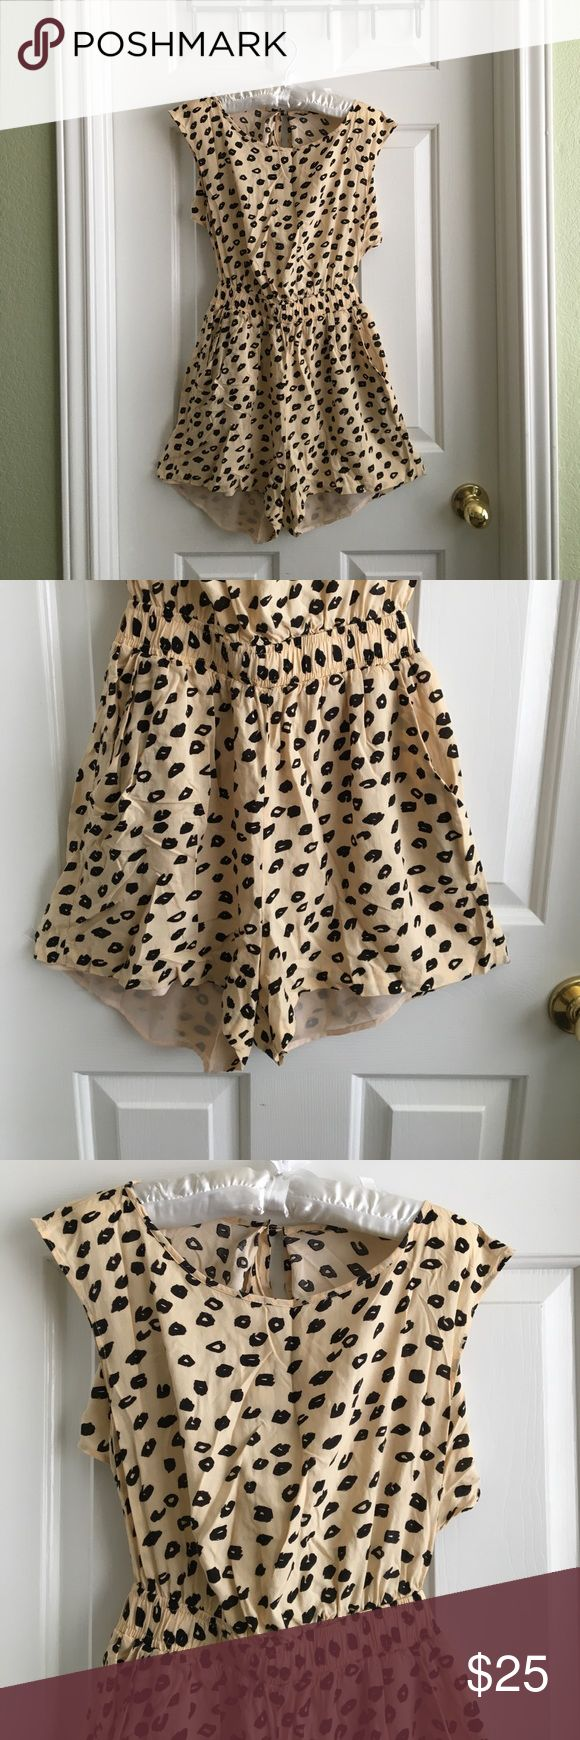 BCBGeneration semi backless cheetah romper Nude cheetah romper also had a nude lining in the shorts Dresses